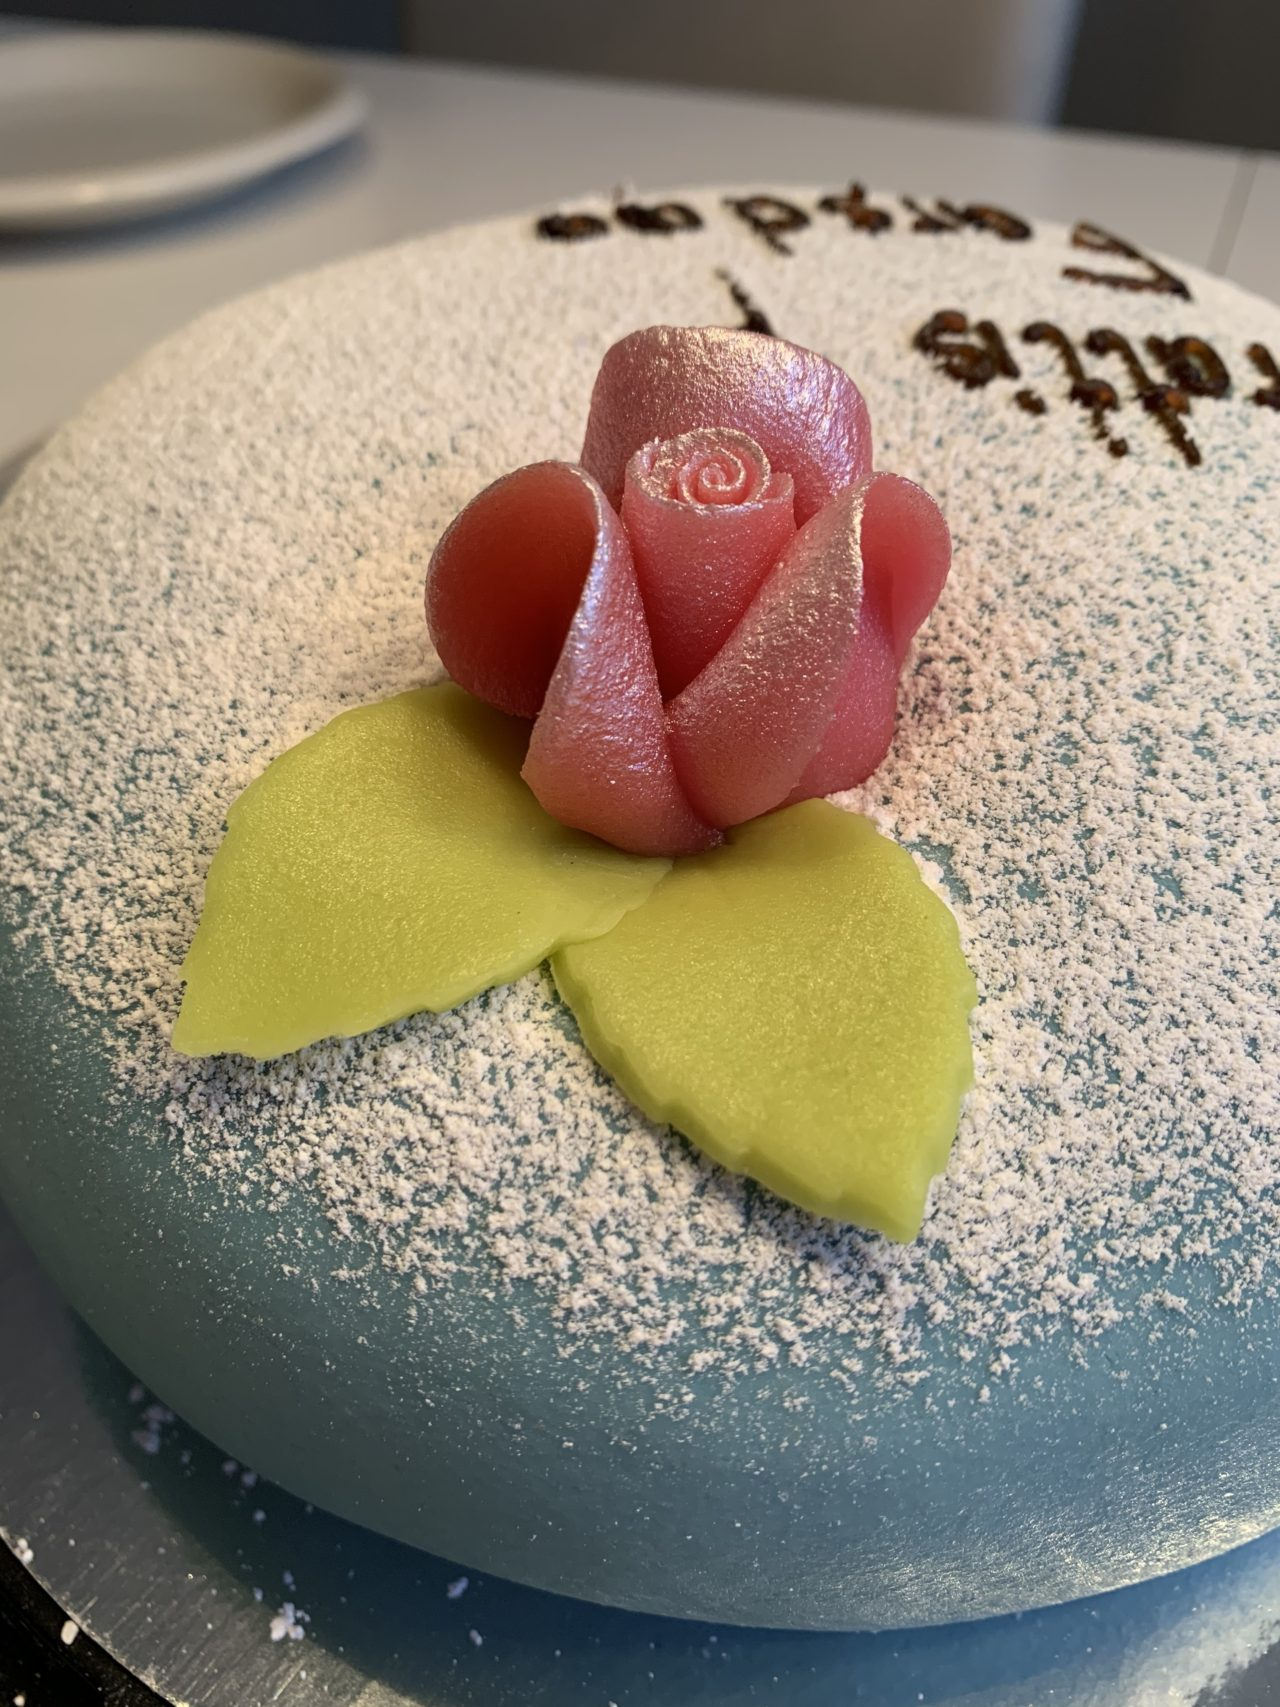 Father's Day Cake With A Marzipan Rose